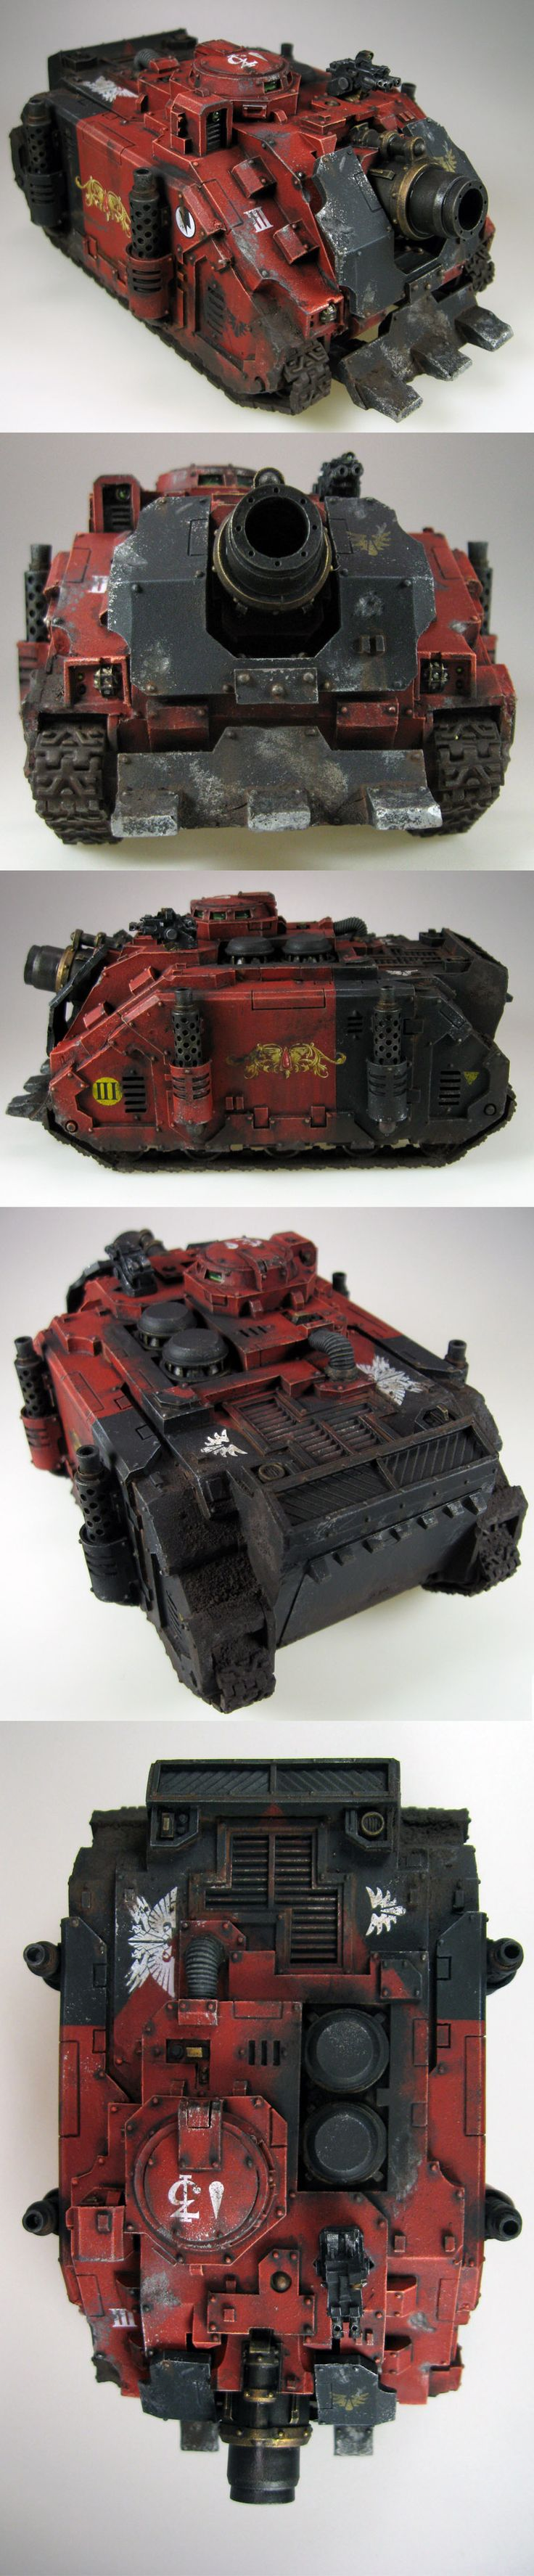 Blood Angels Army Project (pic carpet bombing) - Page 34 - Forum - DakkaDakka   My other army is painted.